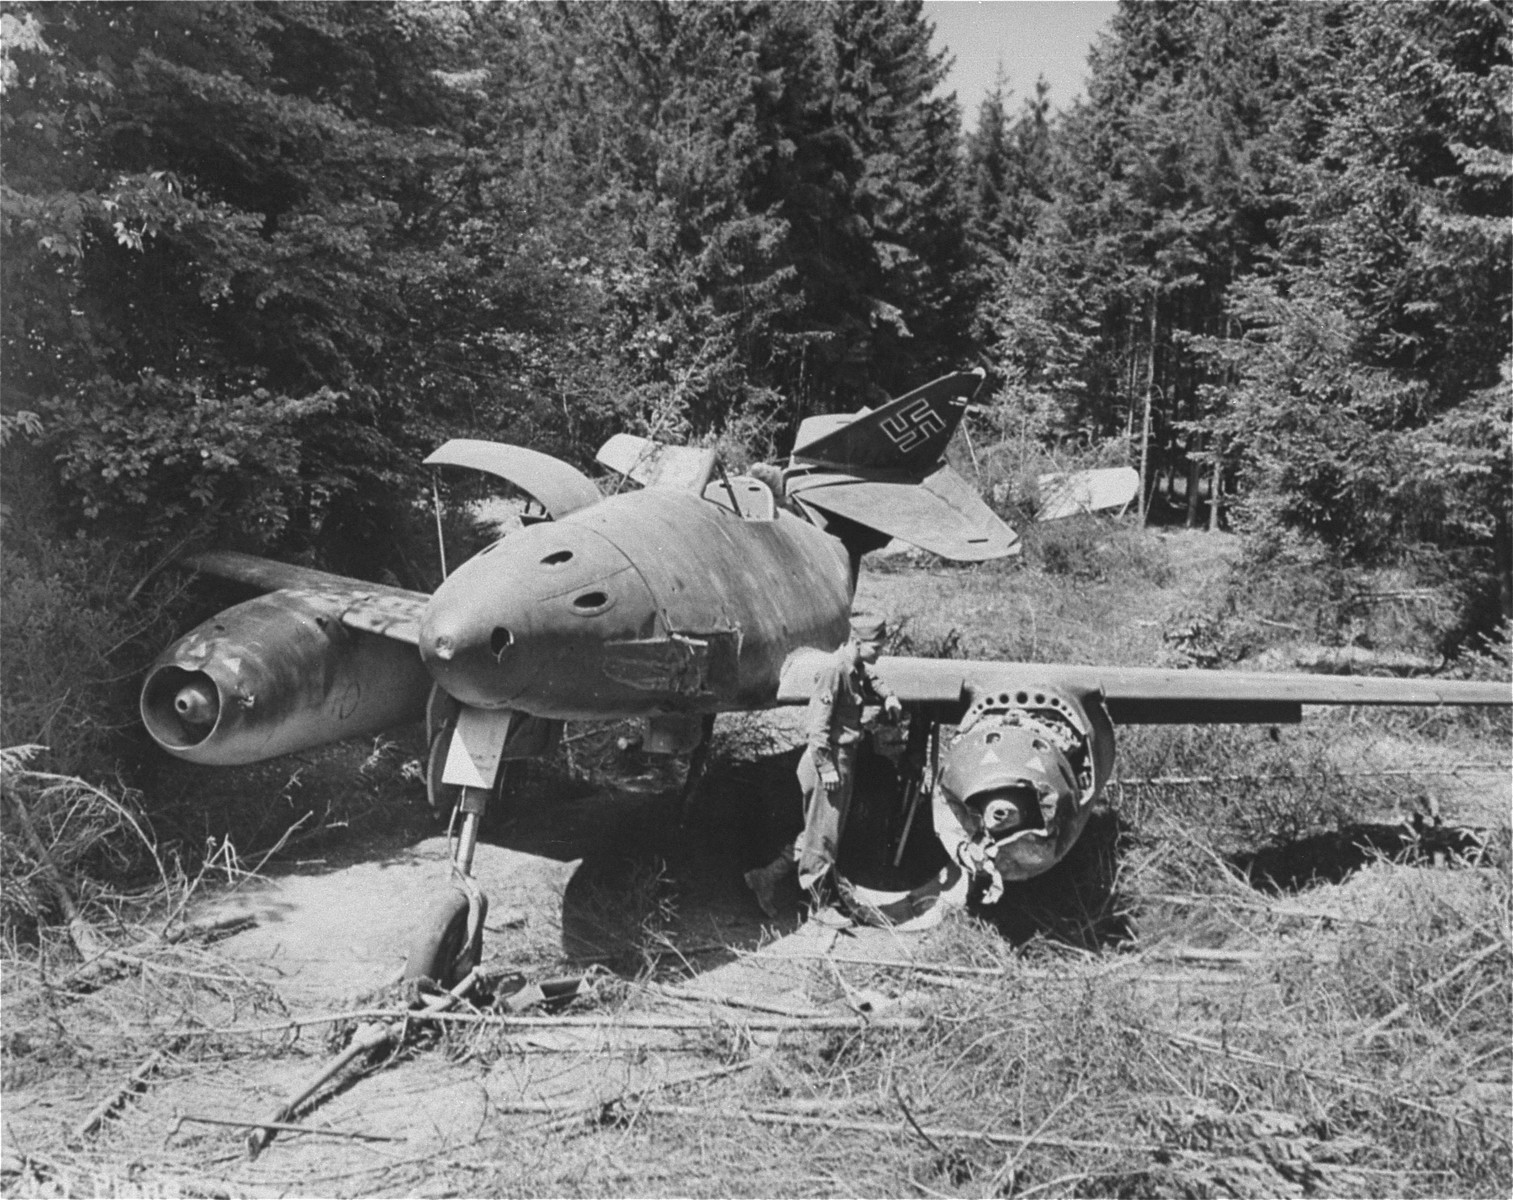 An American soldier investigates a damaged German jet fighter in the vicinity of Dachau.